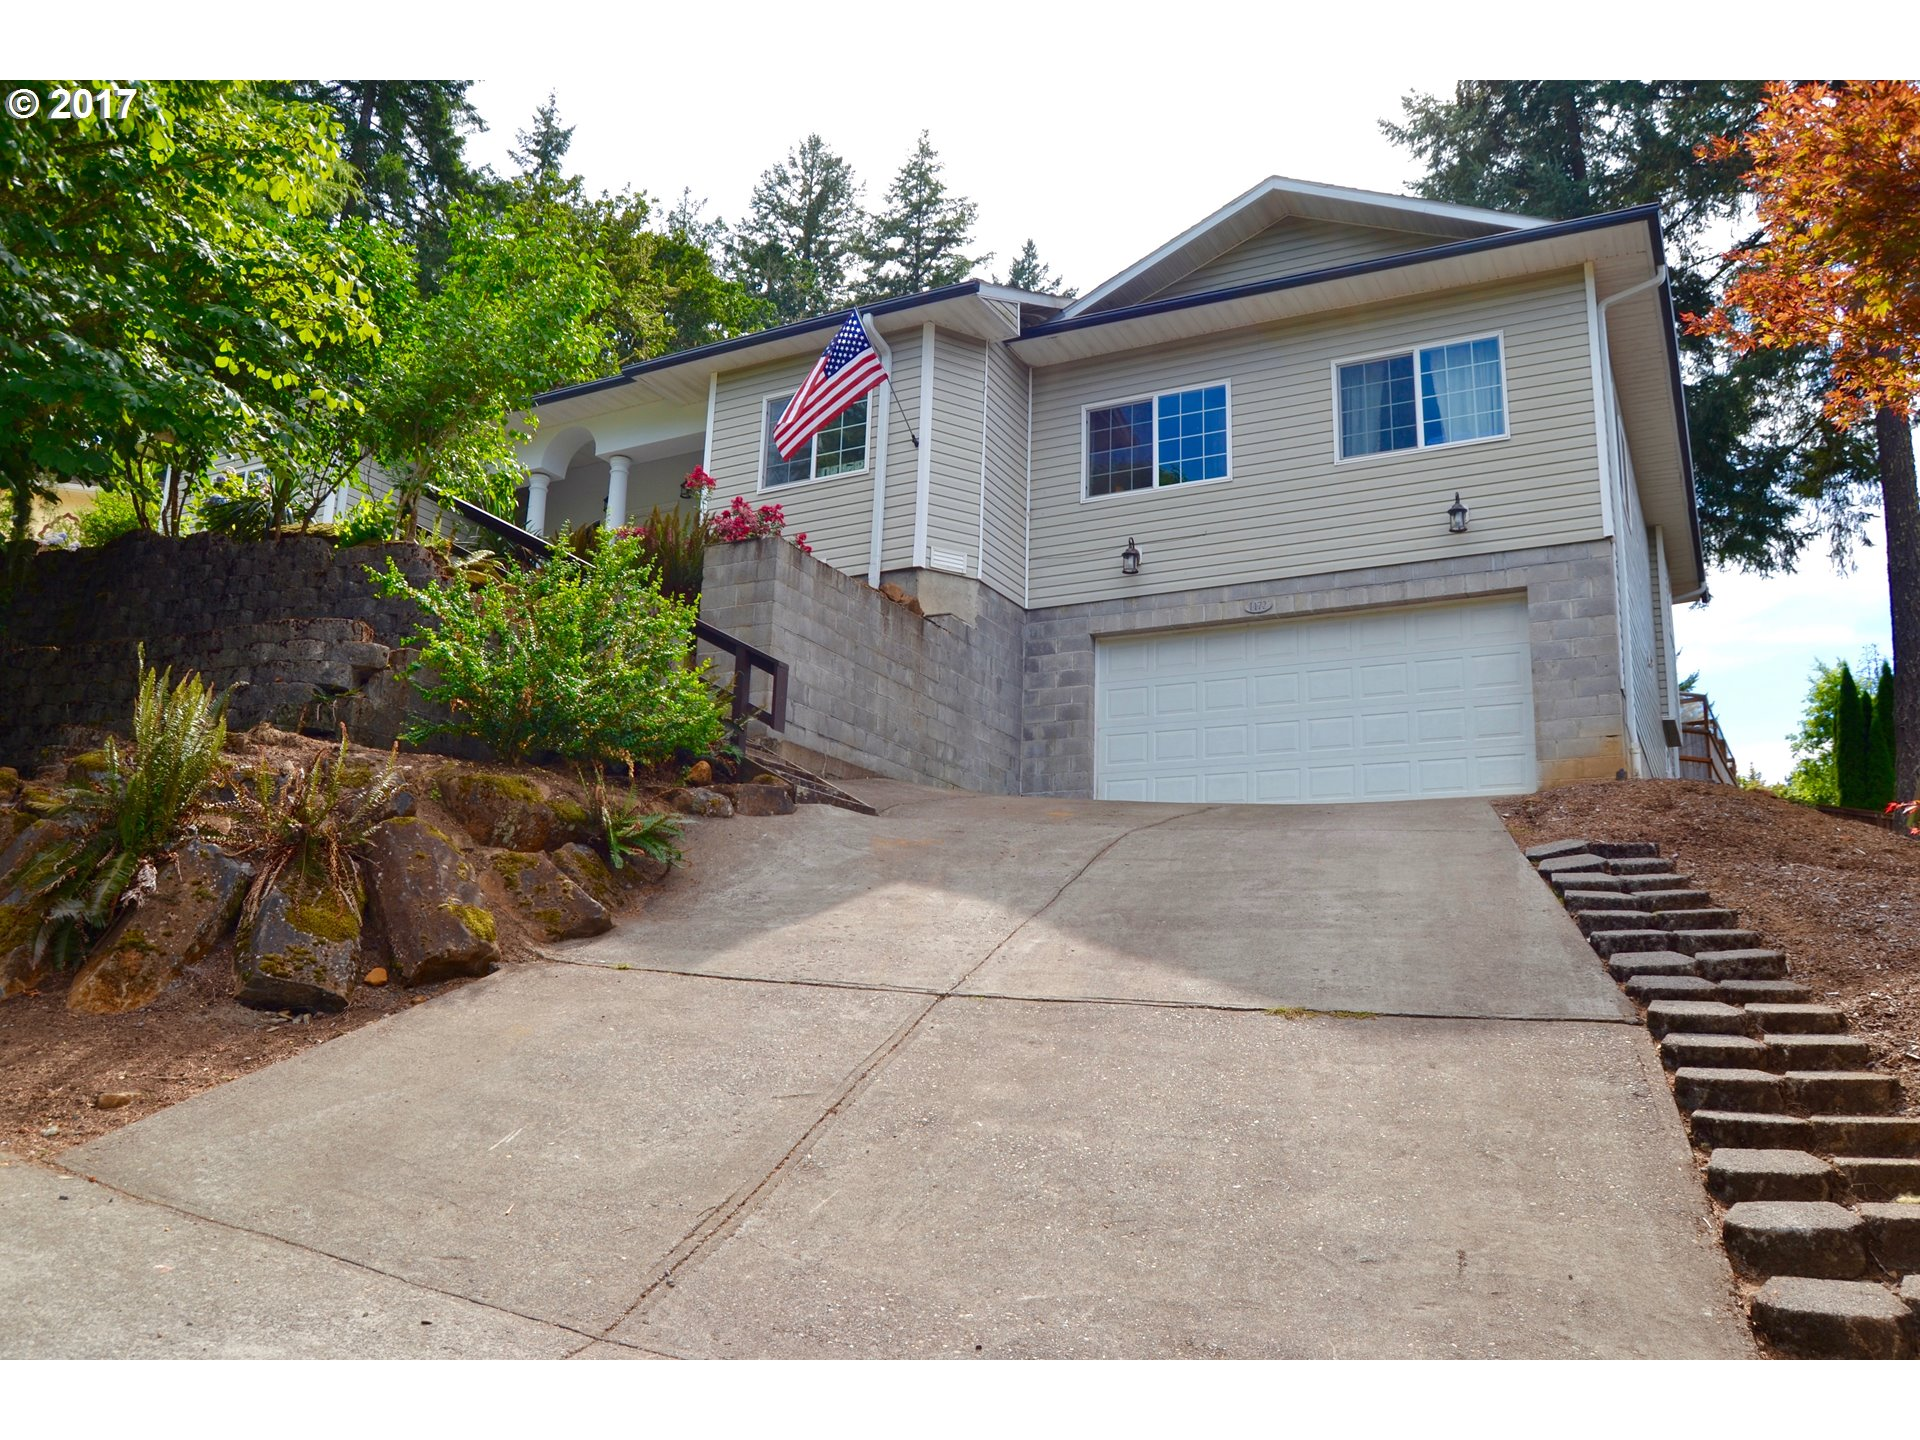 1172 S 69TH PL, Springfield OR 97478